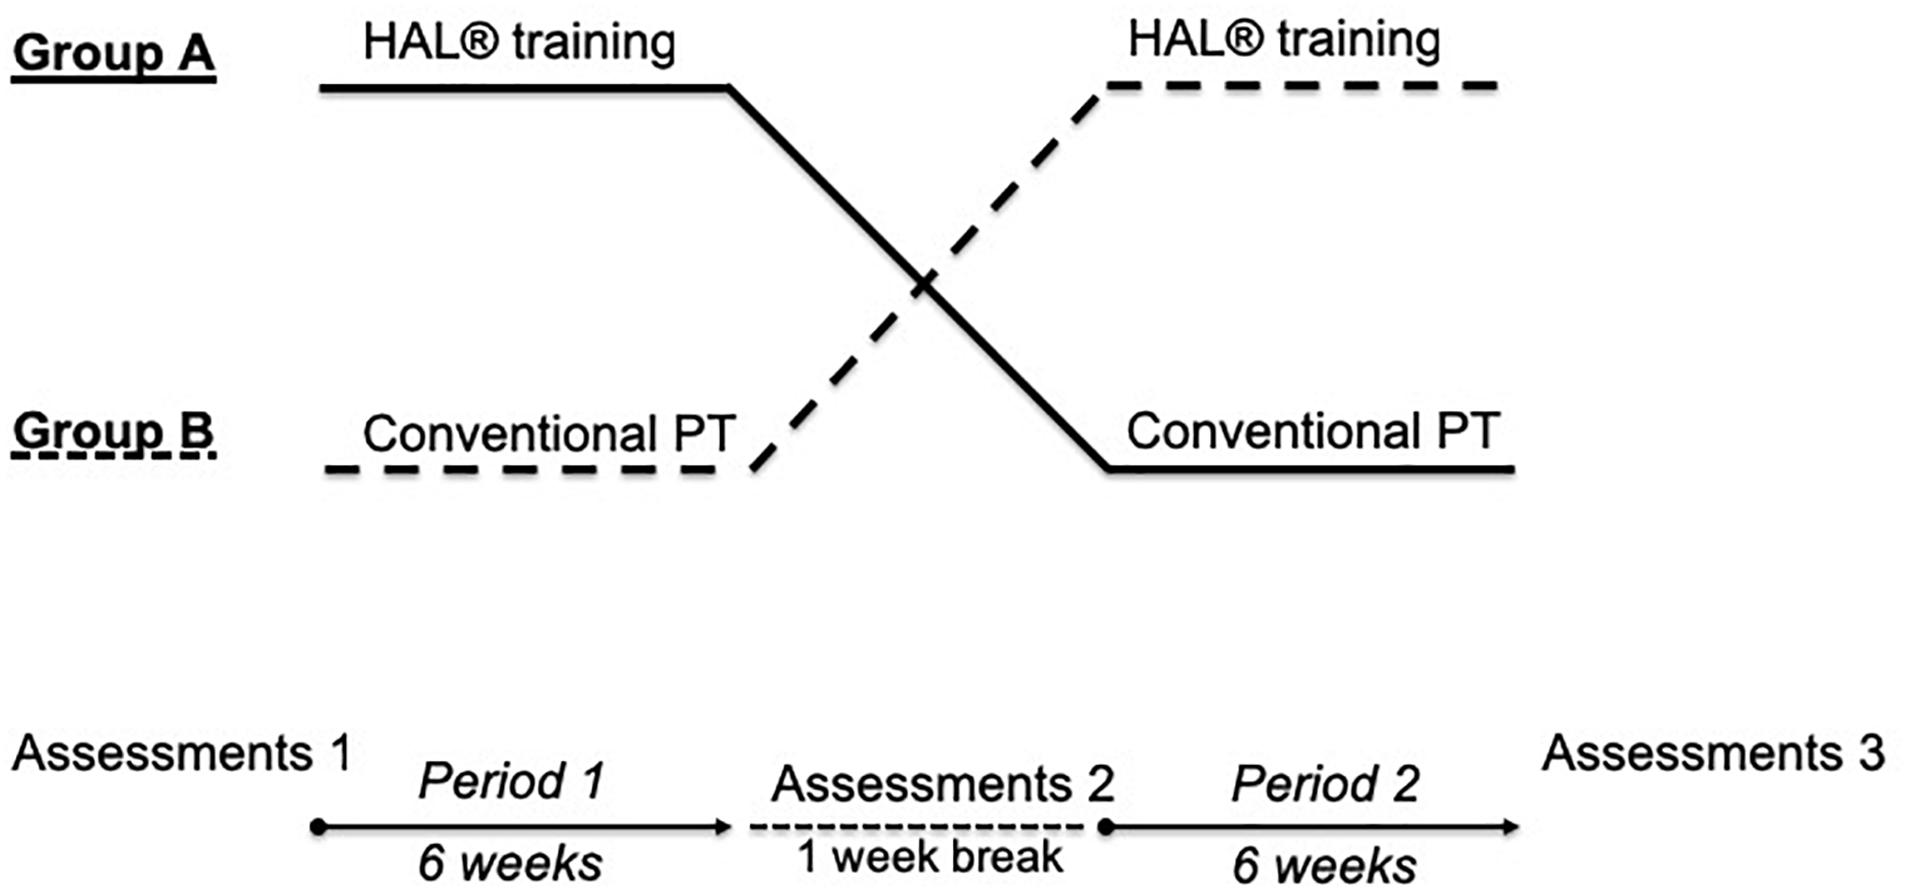 Frontiers A Randomized And Controlled Crossover Study Investigating The Improvement Of Walking And Posture Functions In Chronic Stroke Patients Using Hal Exoskeleton The Halestro Study Hal Exoskeleton Stroke Study Neuroscience